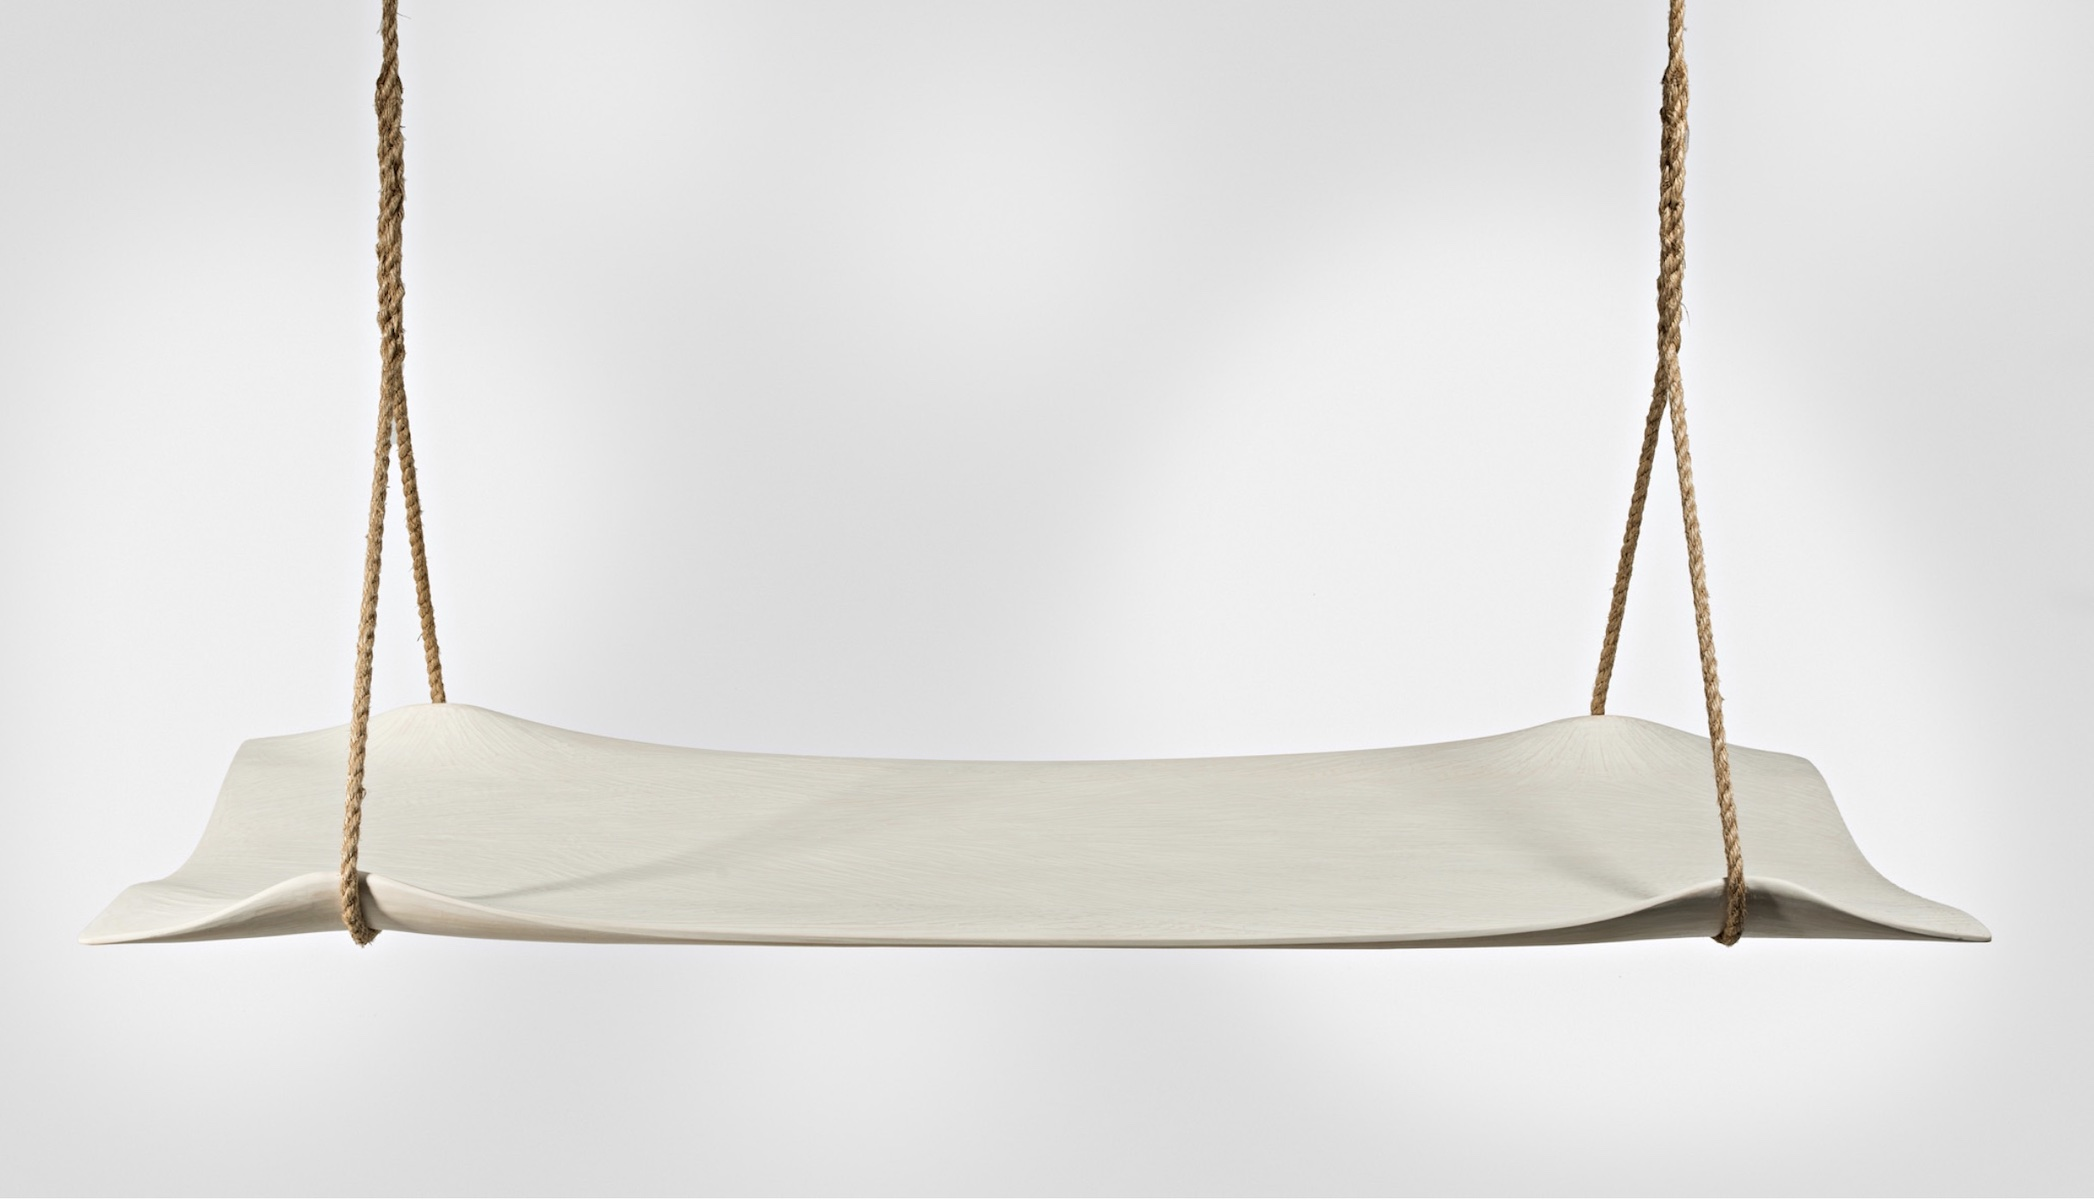 front view of the Swing Seat by artist Christopher Kurtz